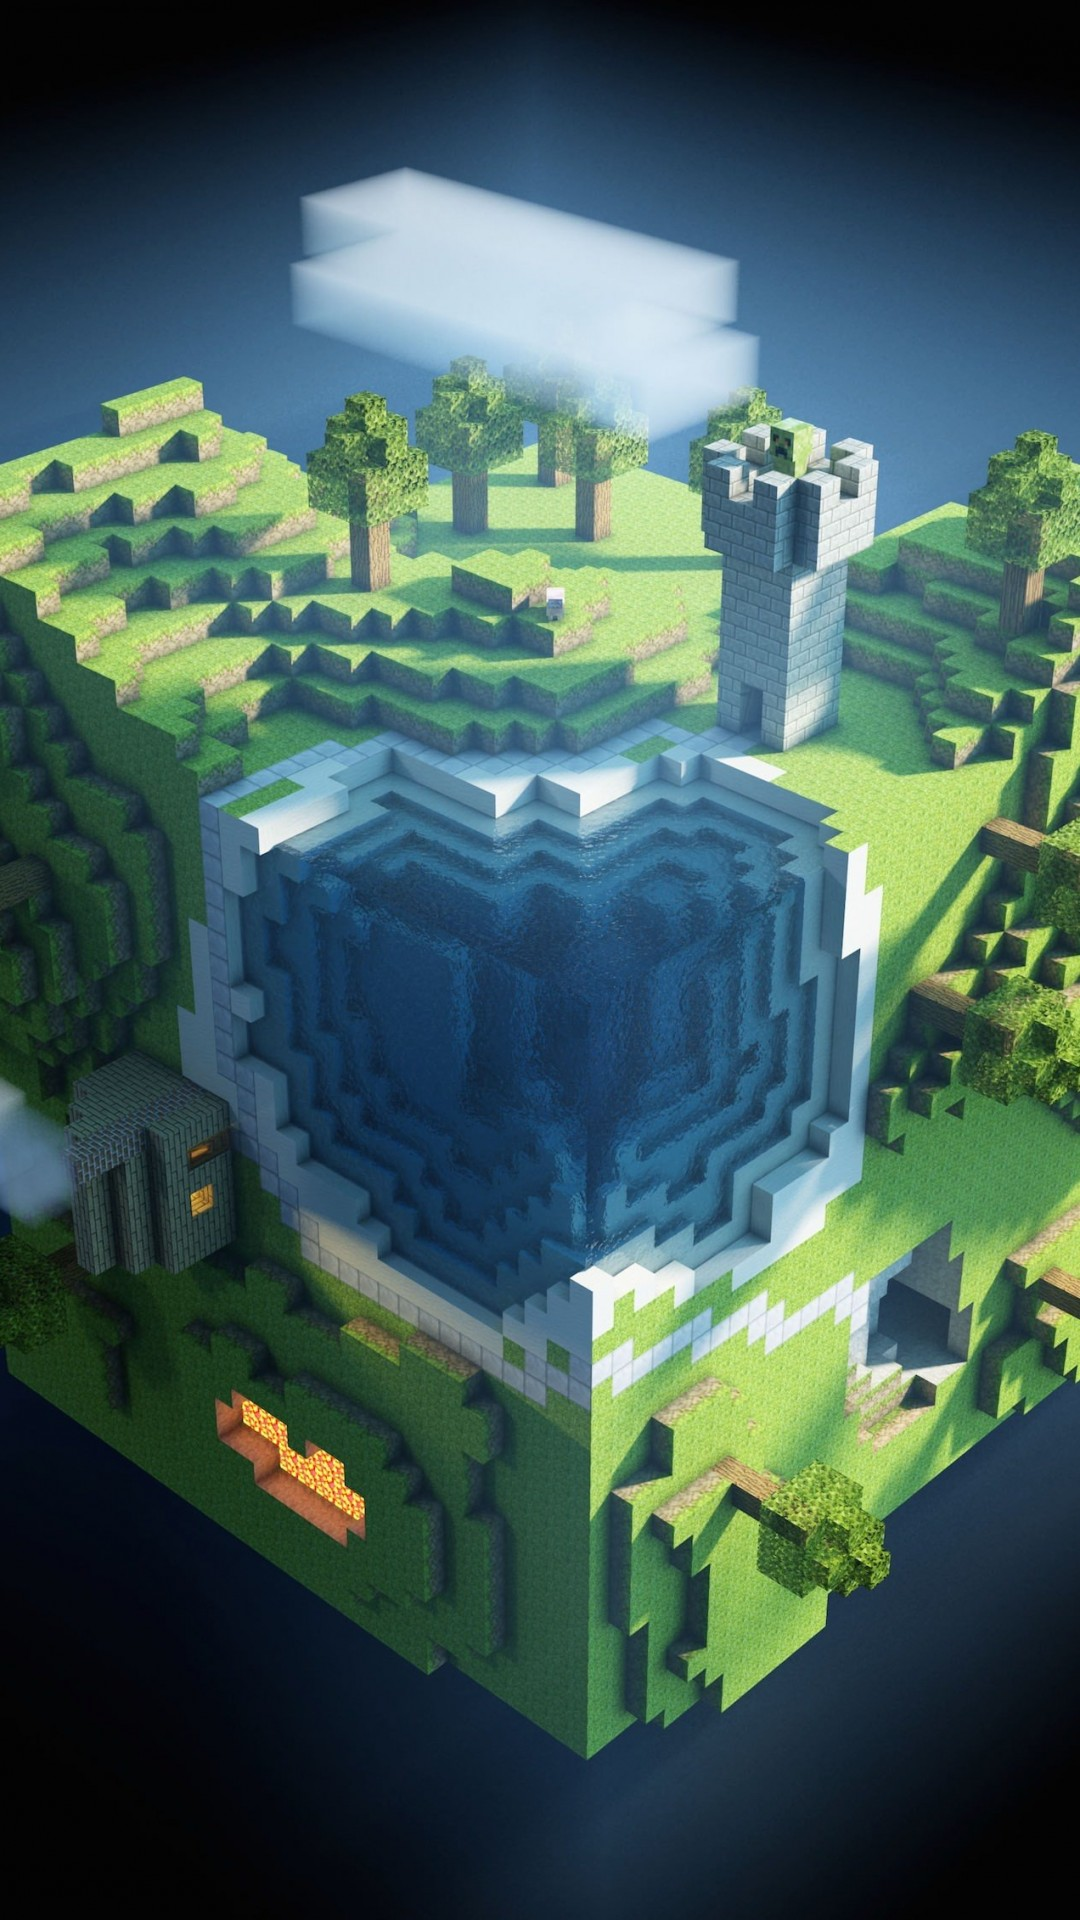 Planet Minecraft Wallpaper for Motorola Moto X